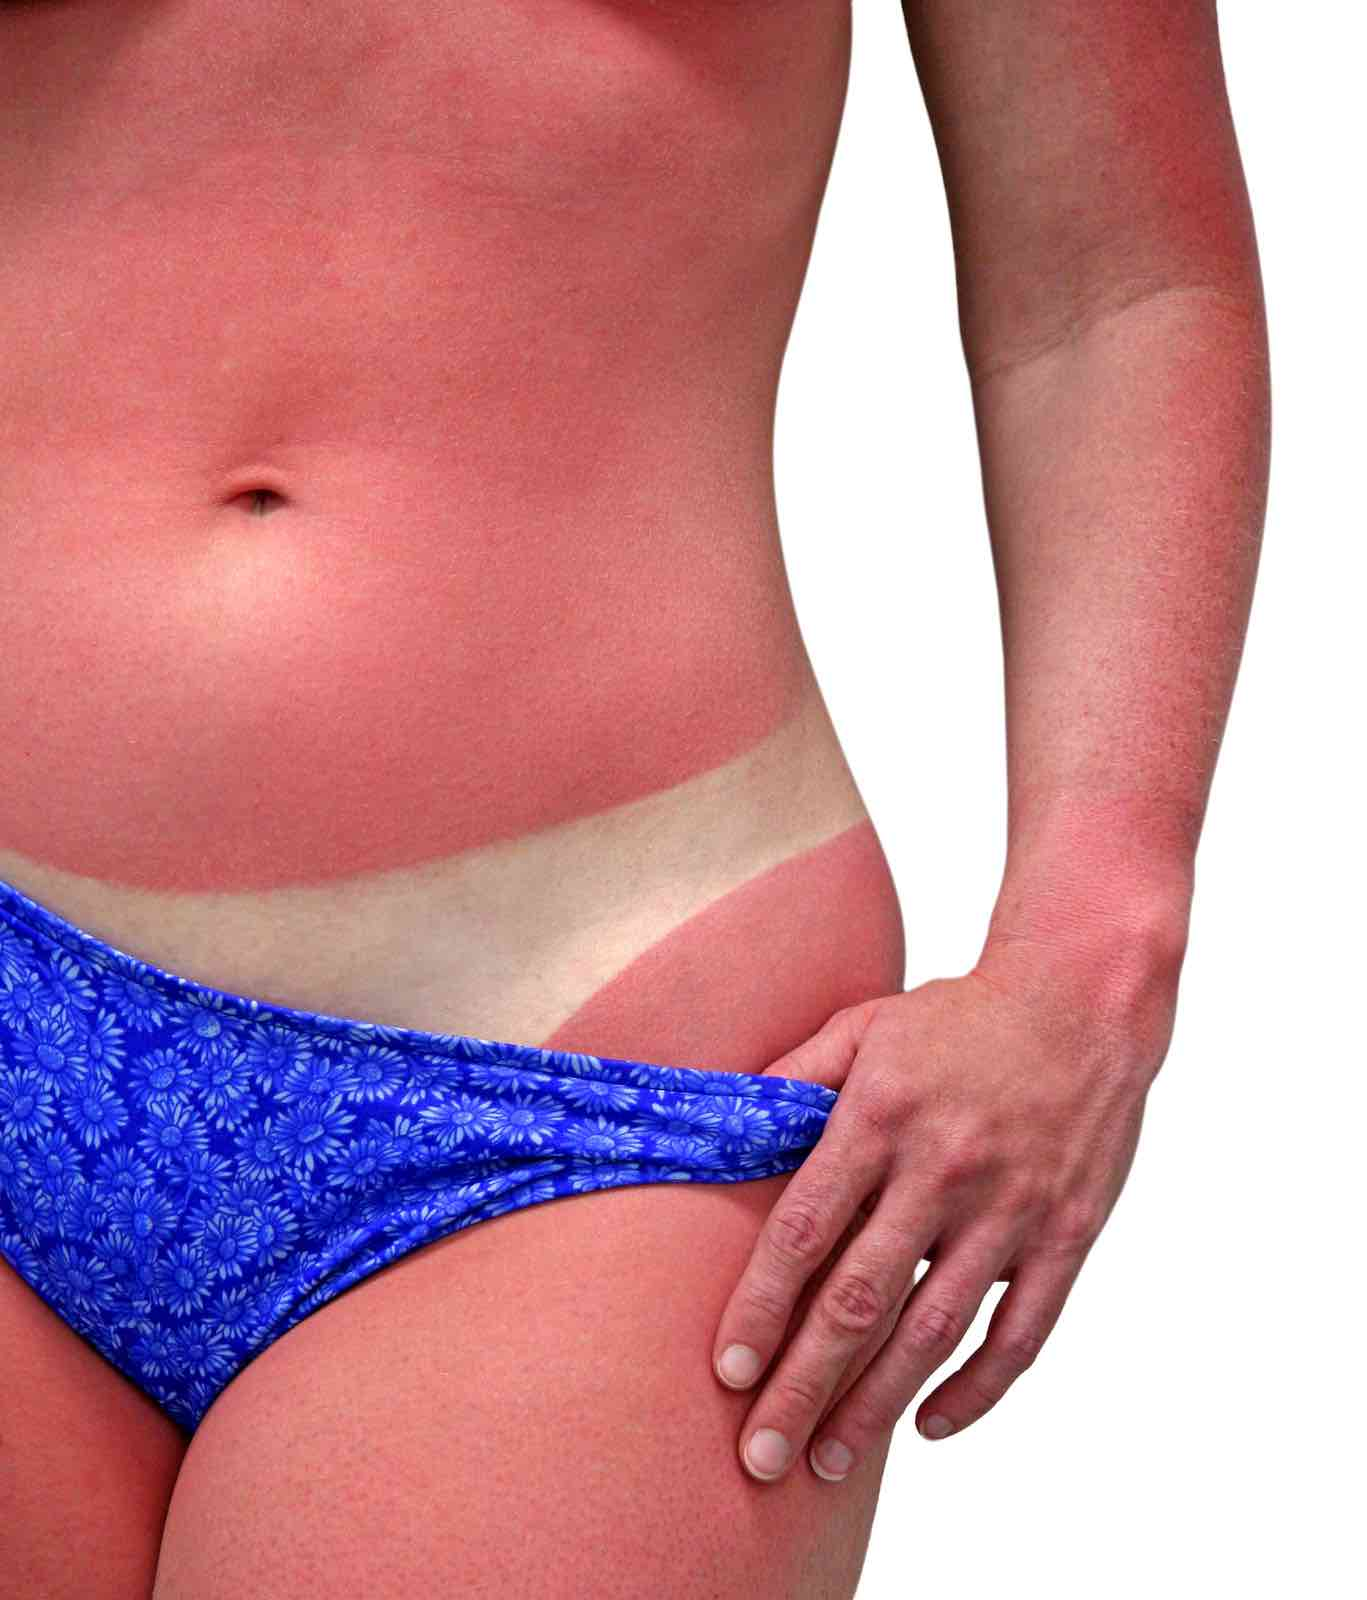 sunburn is a safety issue